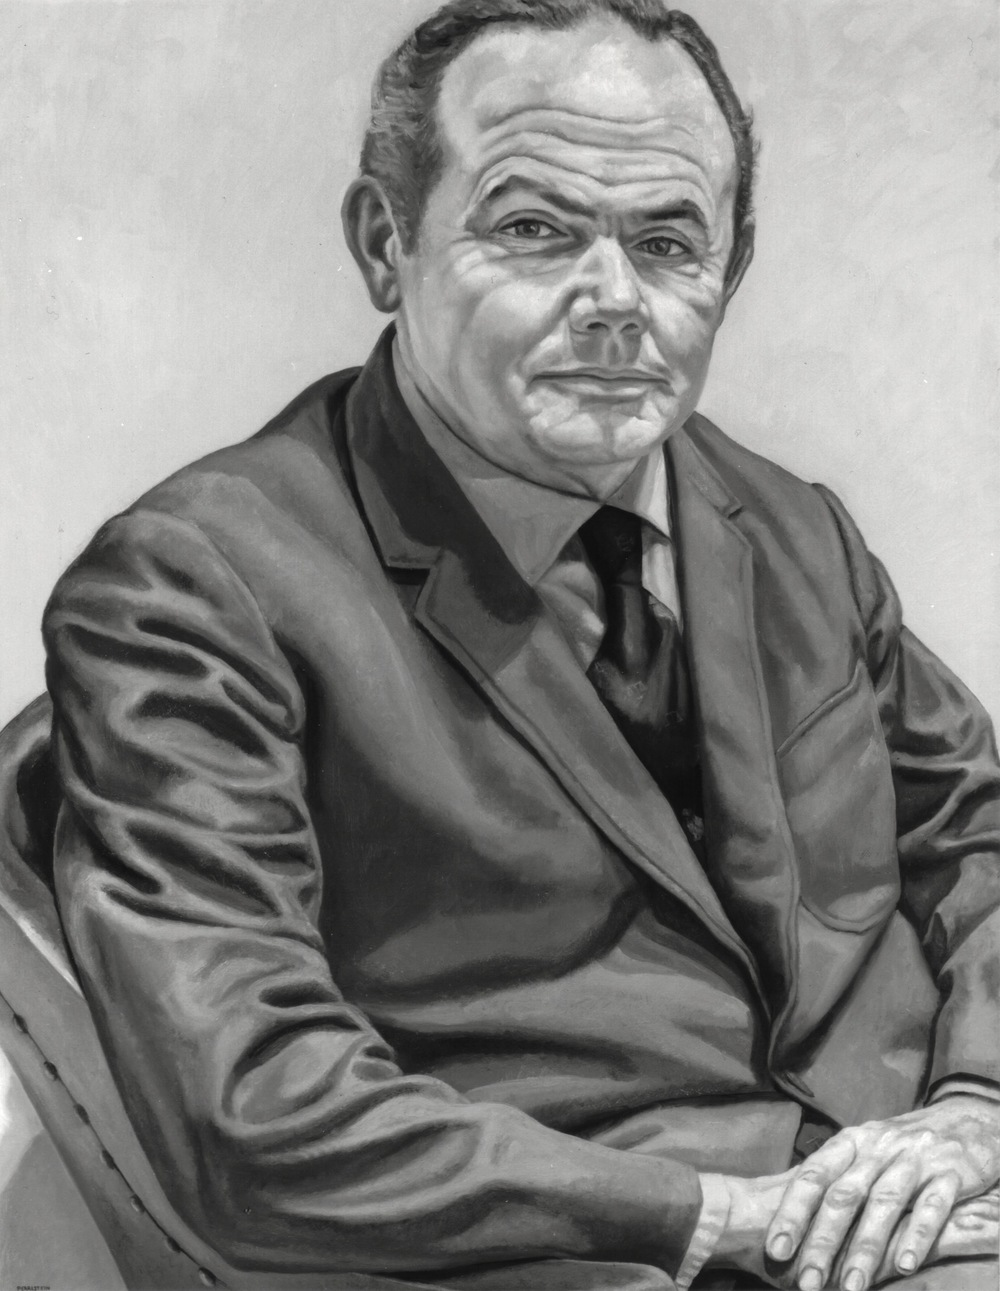 President William F. Quillian, Jr. , 1971 Oil on canvas 42 x 32 in (B&W image of color painting) Maier Museum of Art Randolph Macon Women's College Lynchburg, Virginia